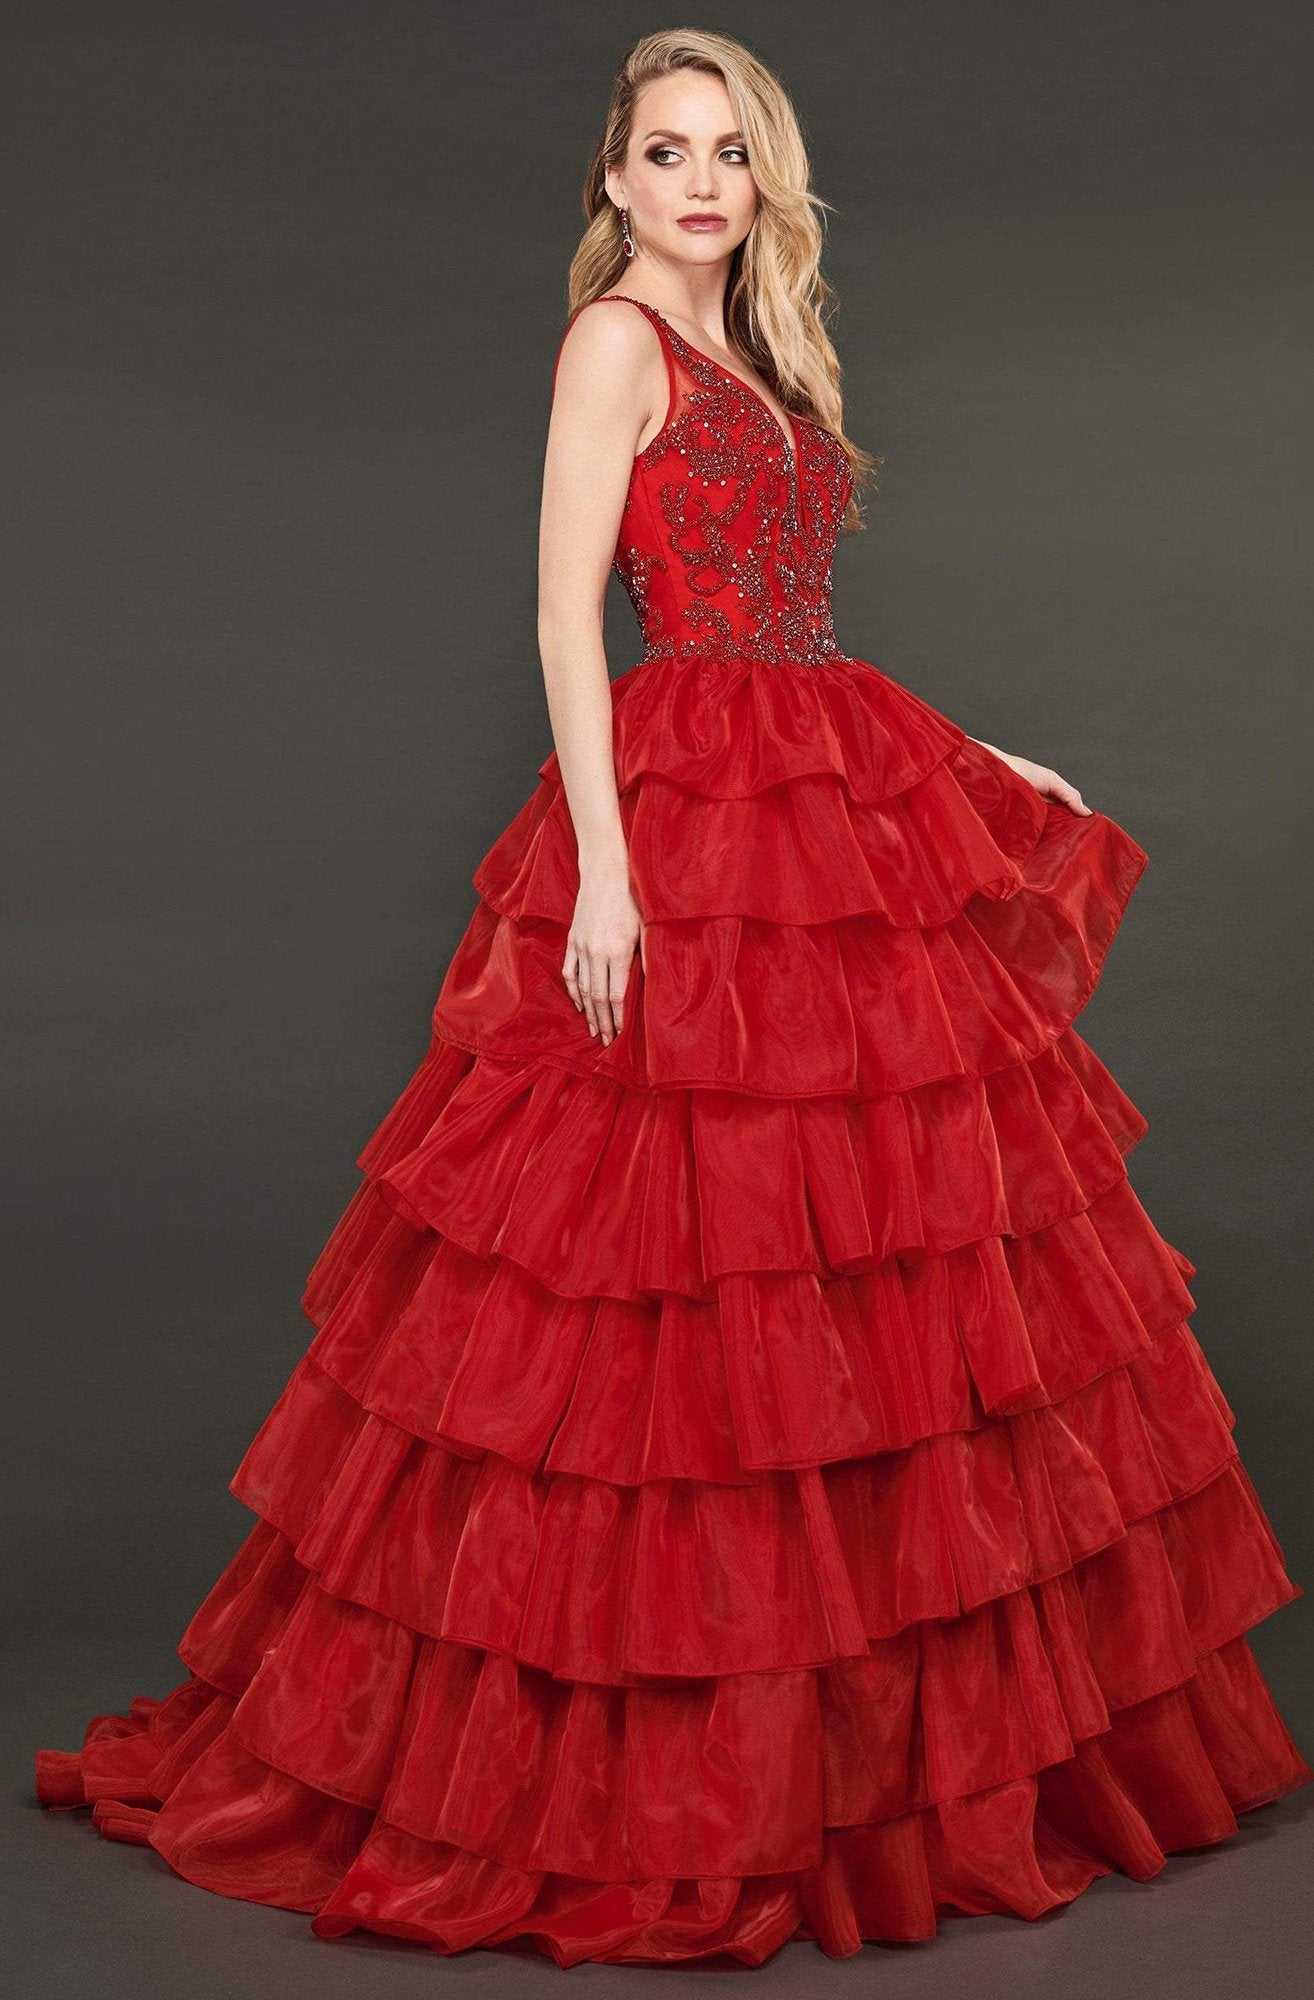 Rachel Allan Couture - 8407 Bead Embellished Ruffled Ballgown In Red